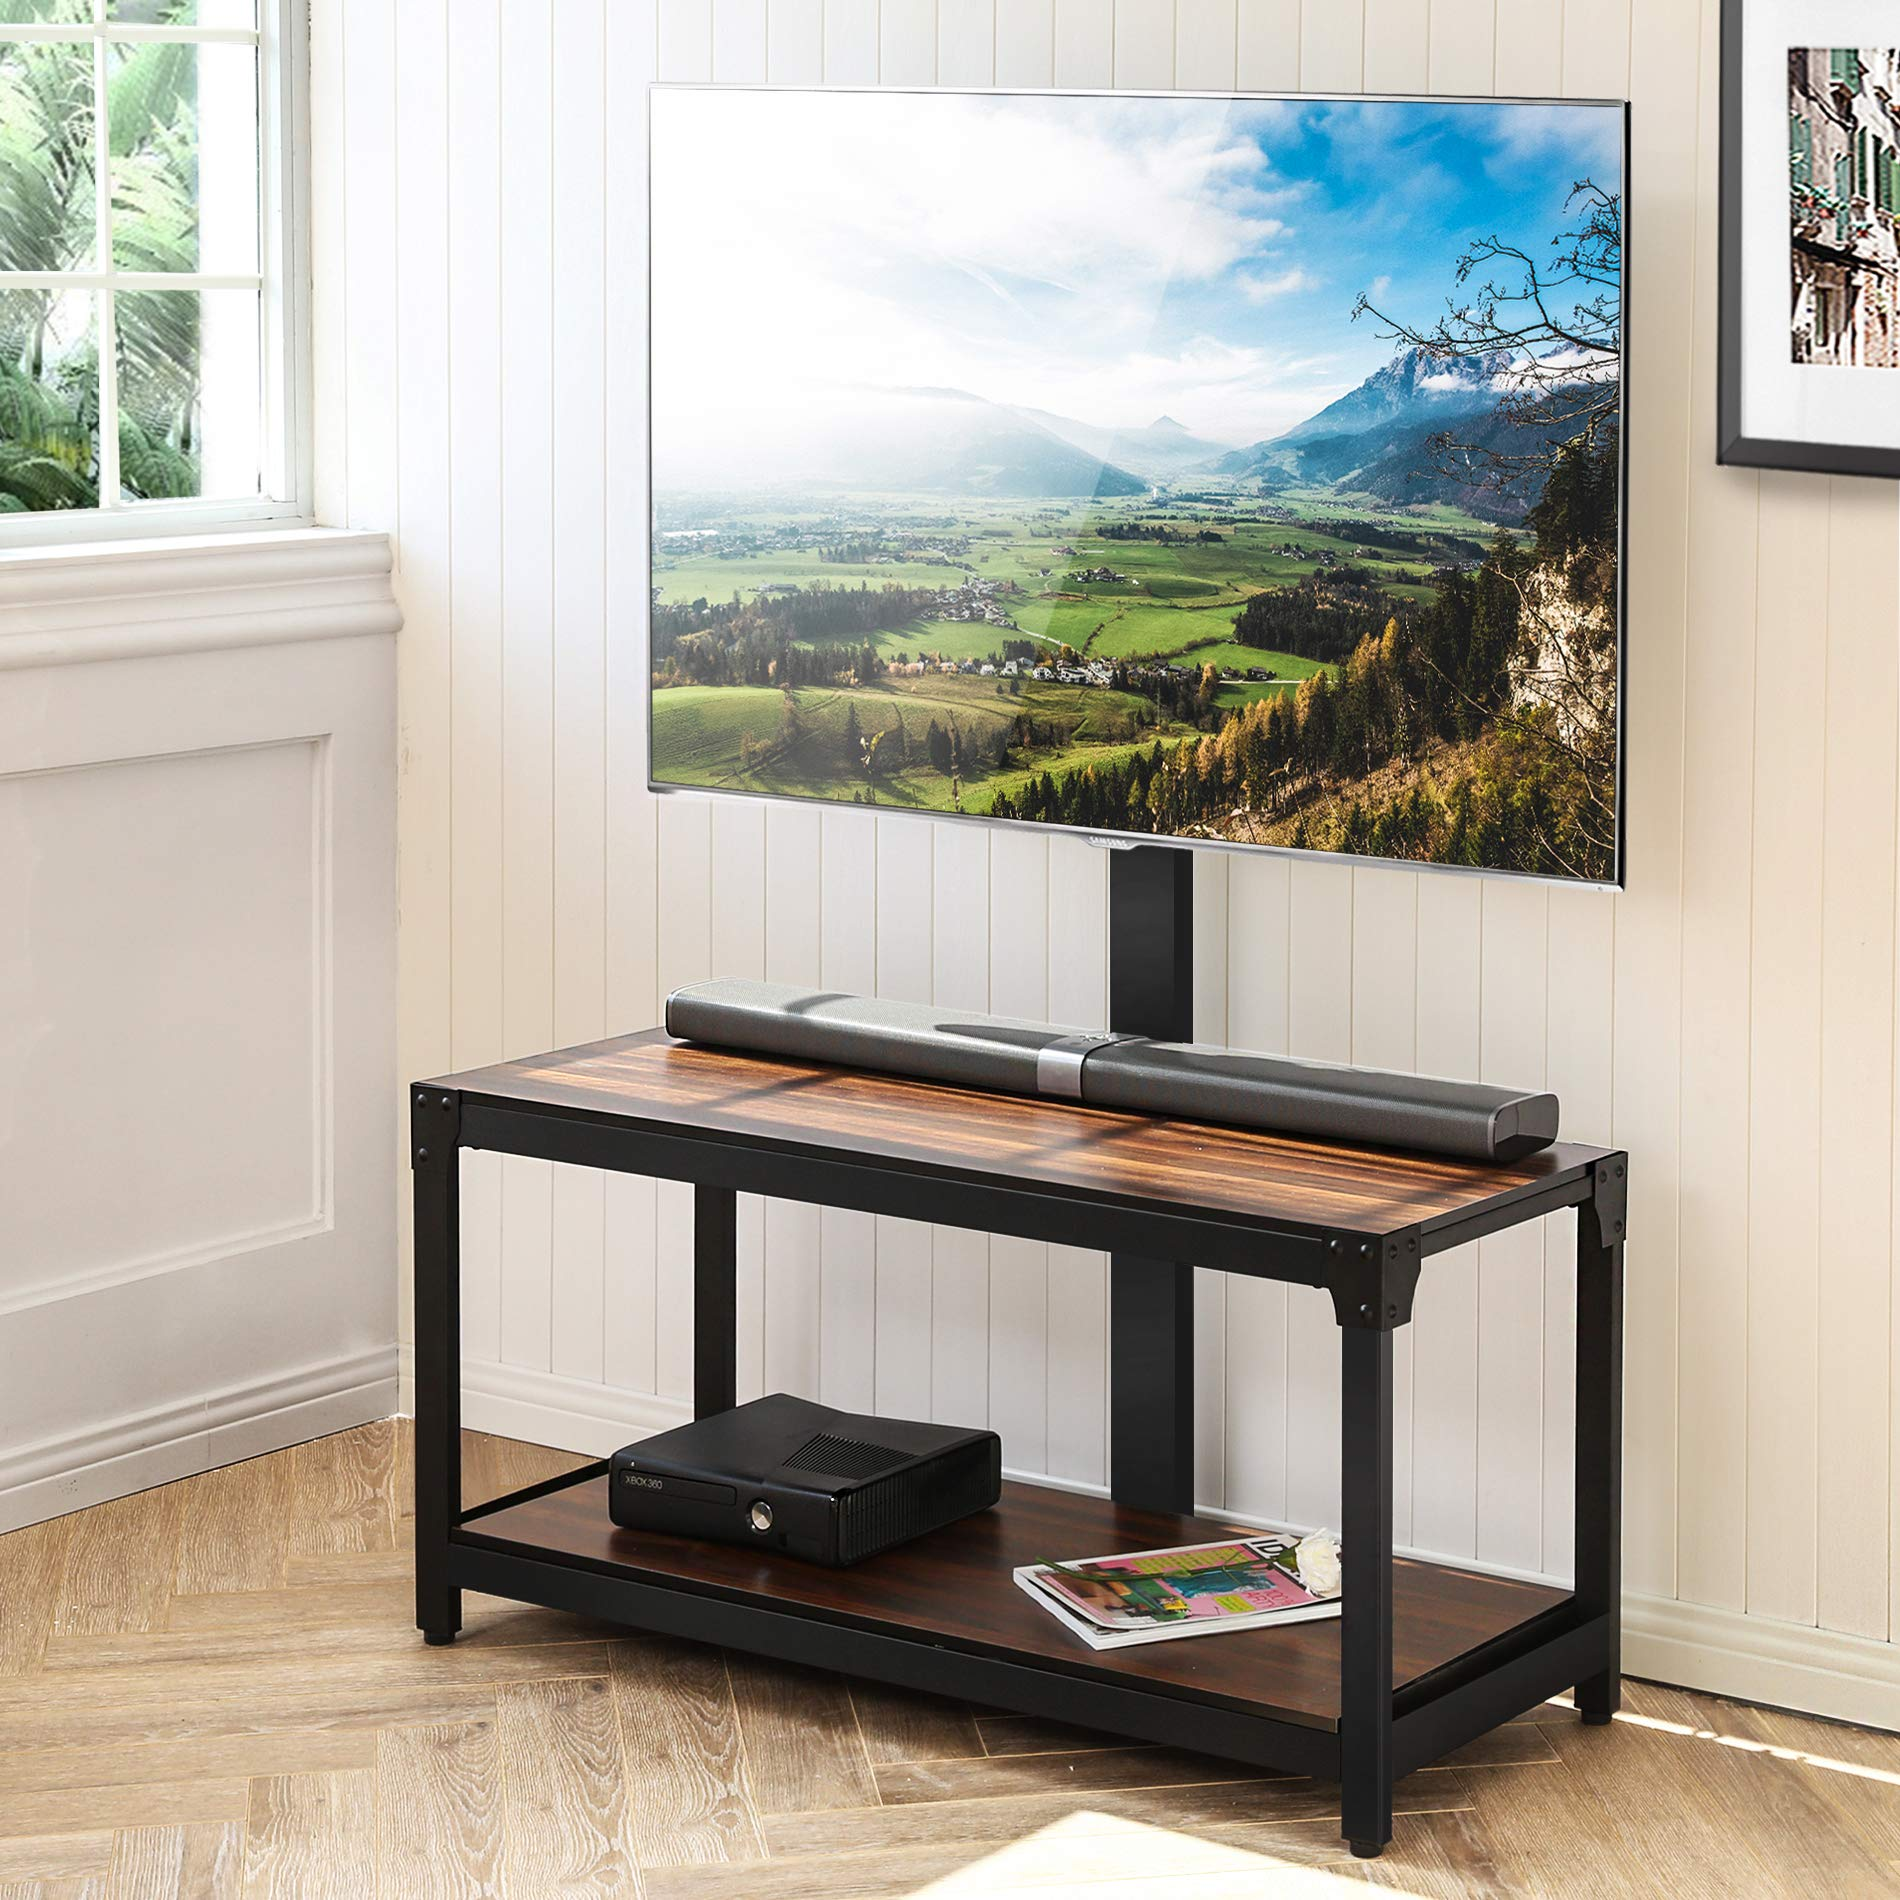 FITUEYES Floor TV Stand with Mount Wood TV Stand Base for 32 to 65 inches Flat Panel or Curved Screen TVs Shelves for Media Player TW208001MB by FITUEYES